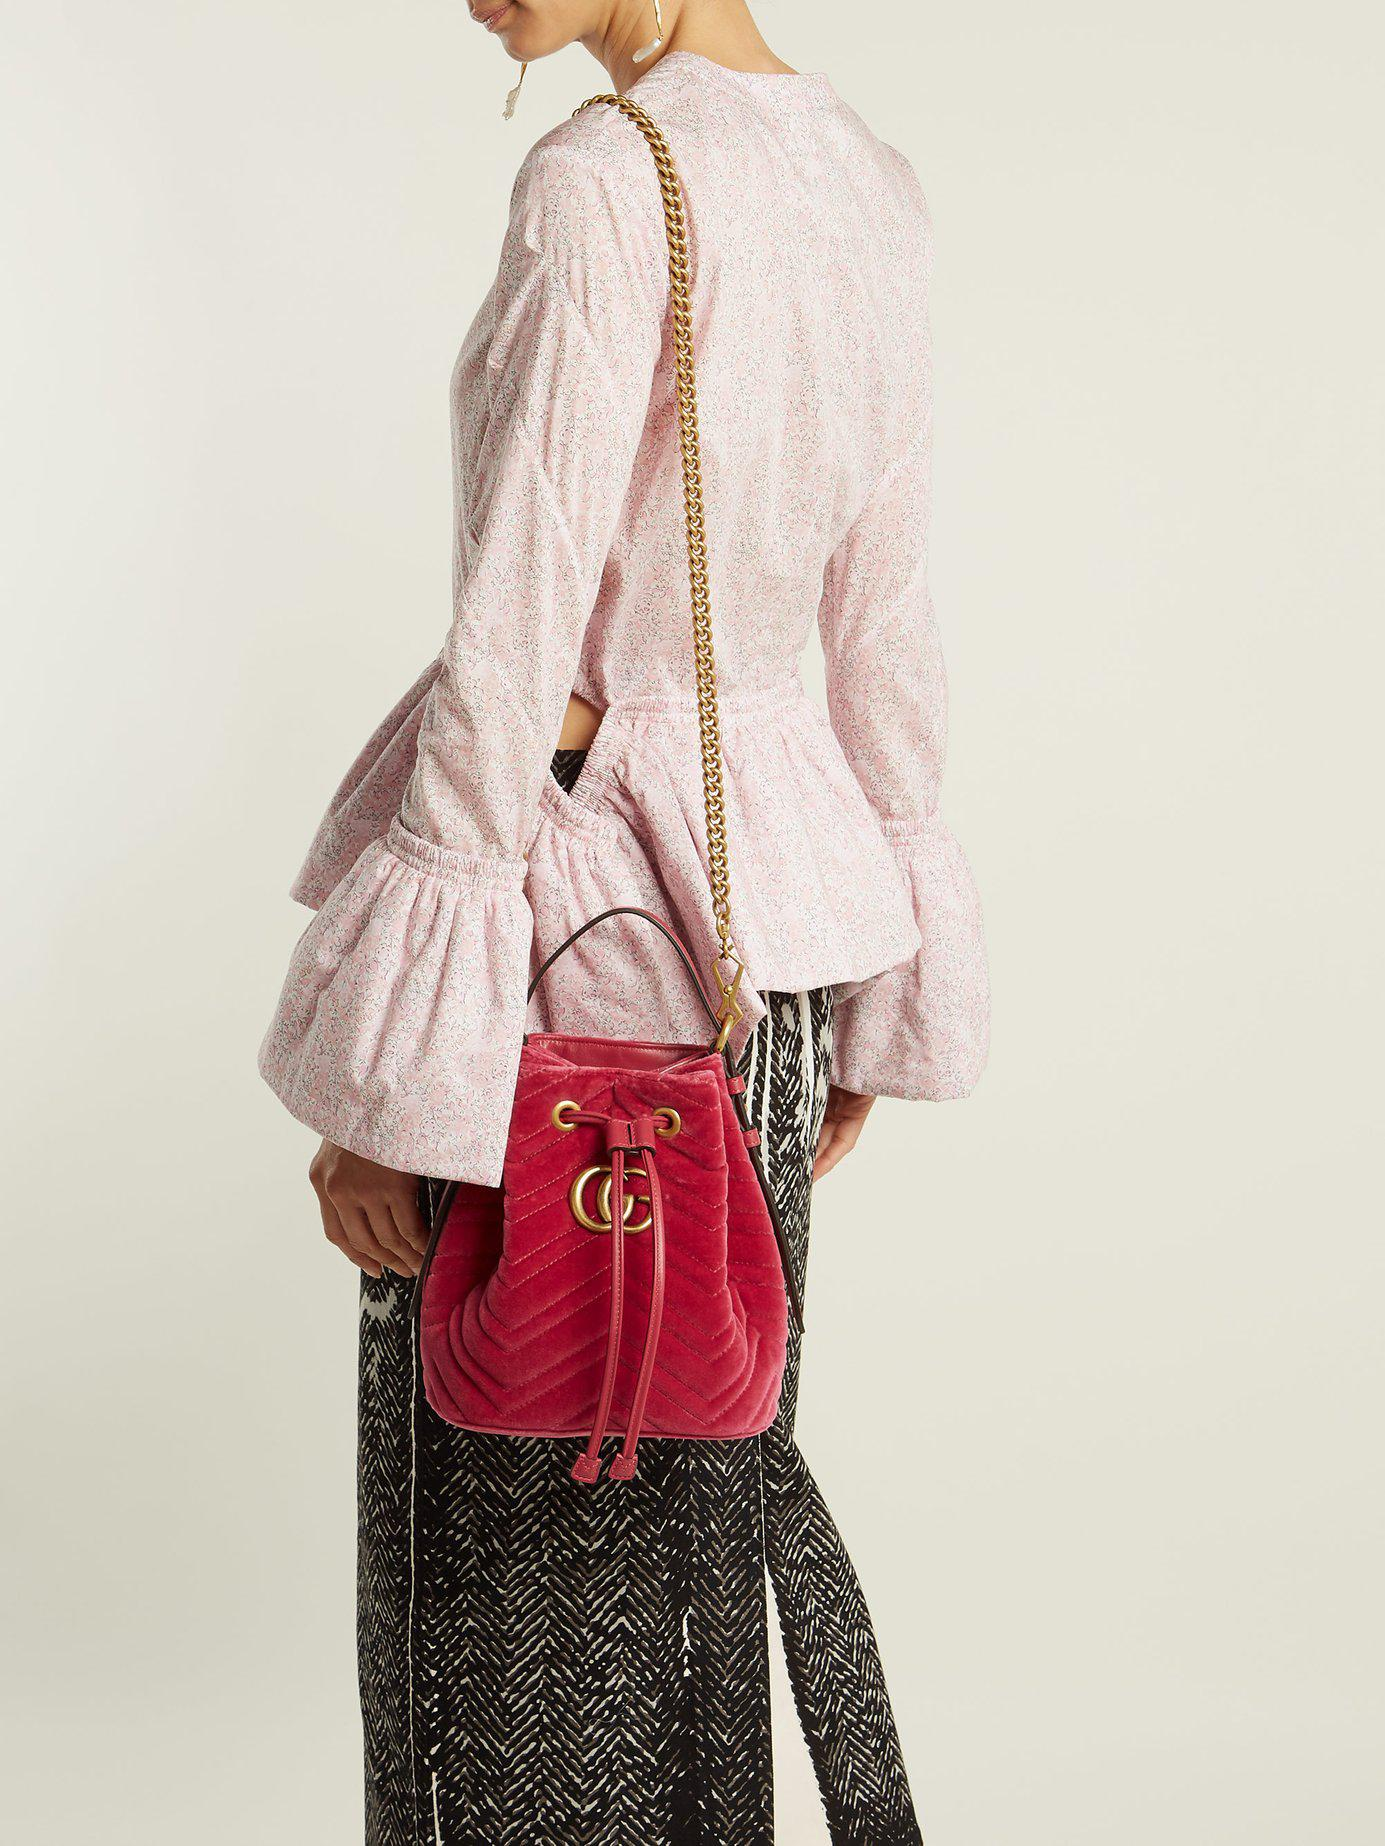 67ca6ebfd Gucci Gg Marmont Quilted Velvet Drawstring Bucket Bag in Pink - Lyst